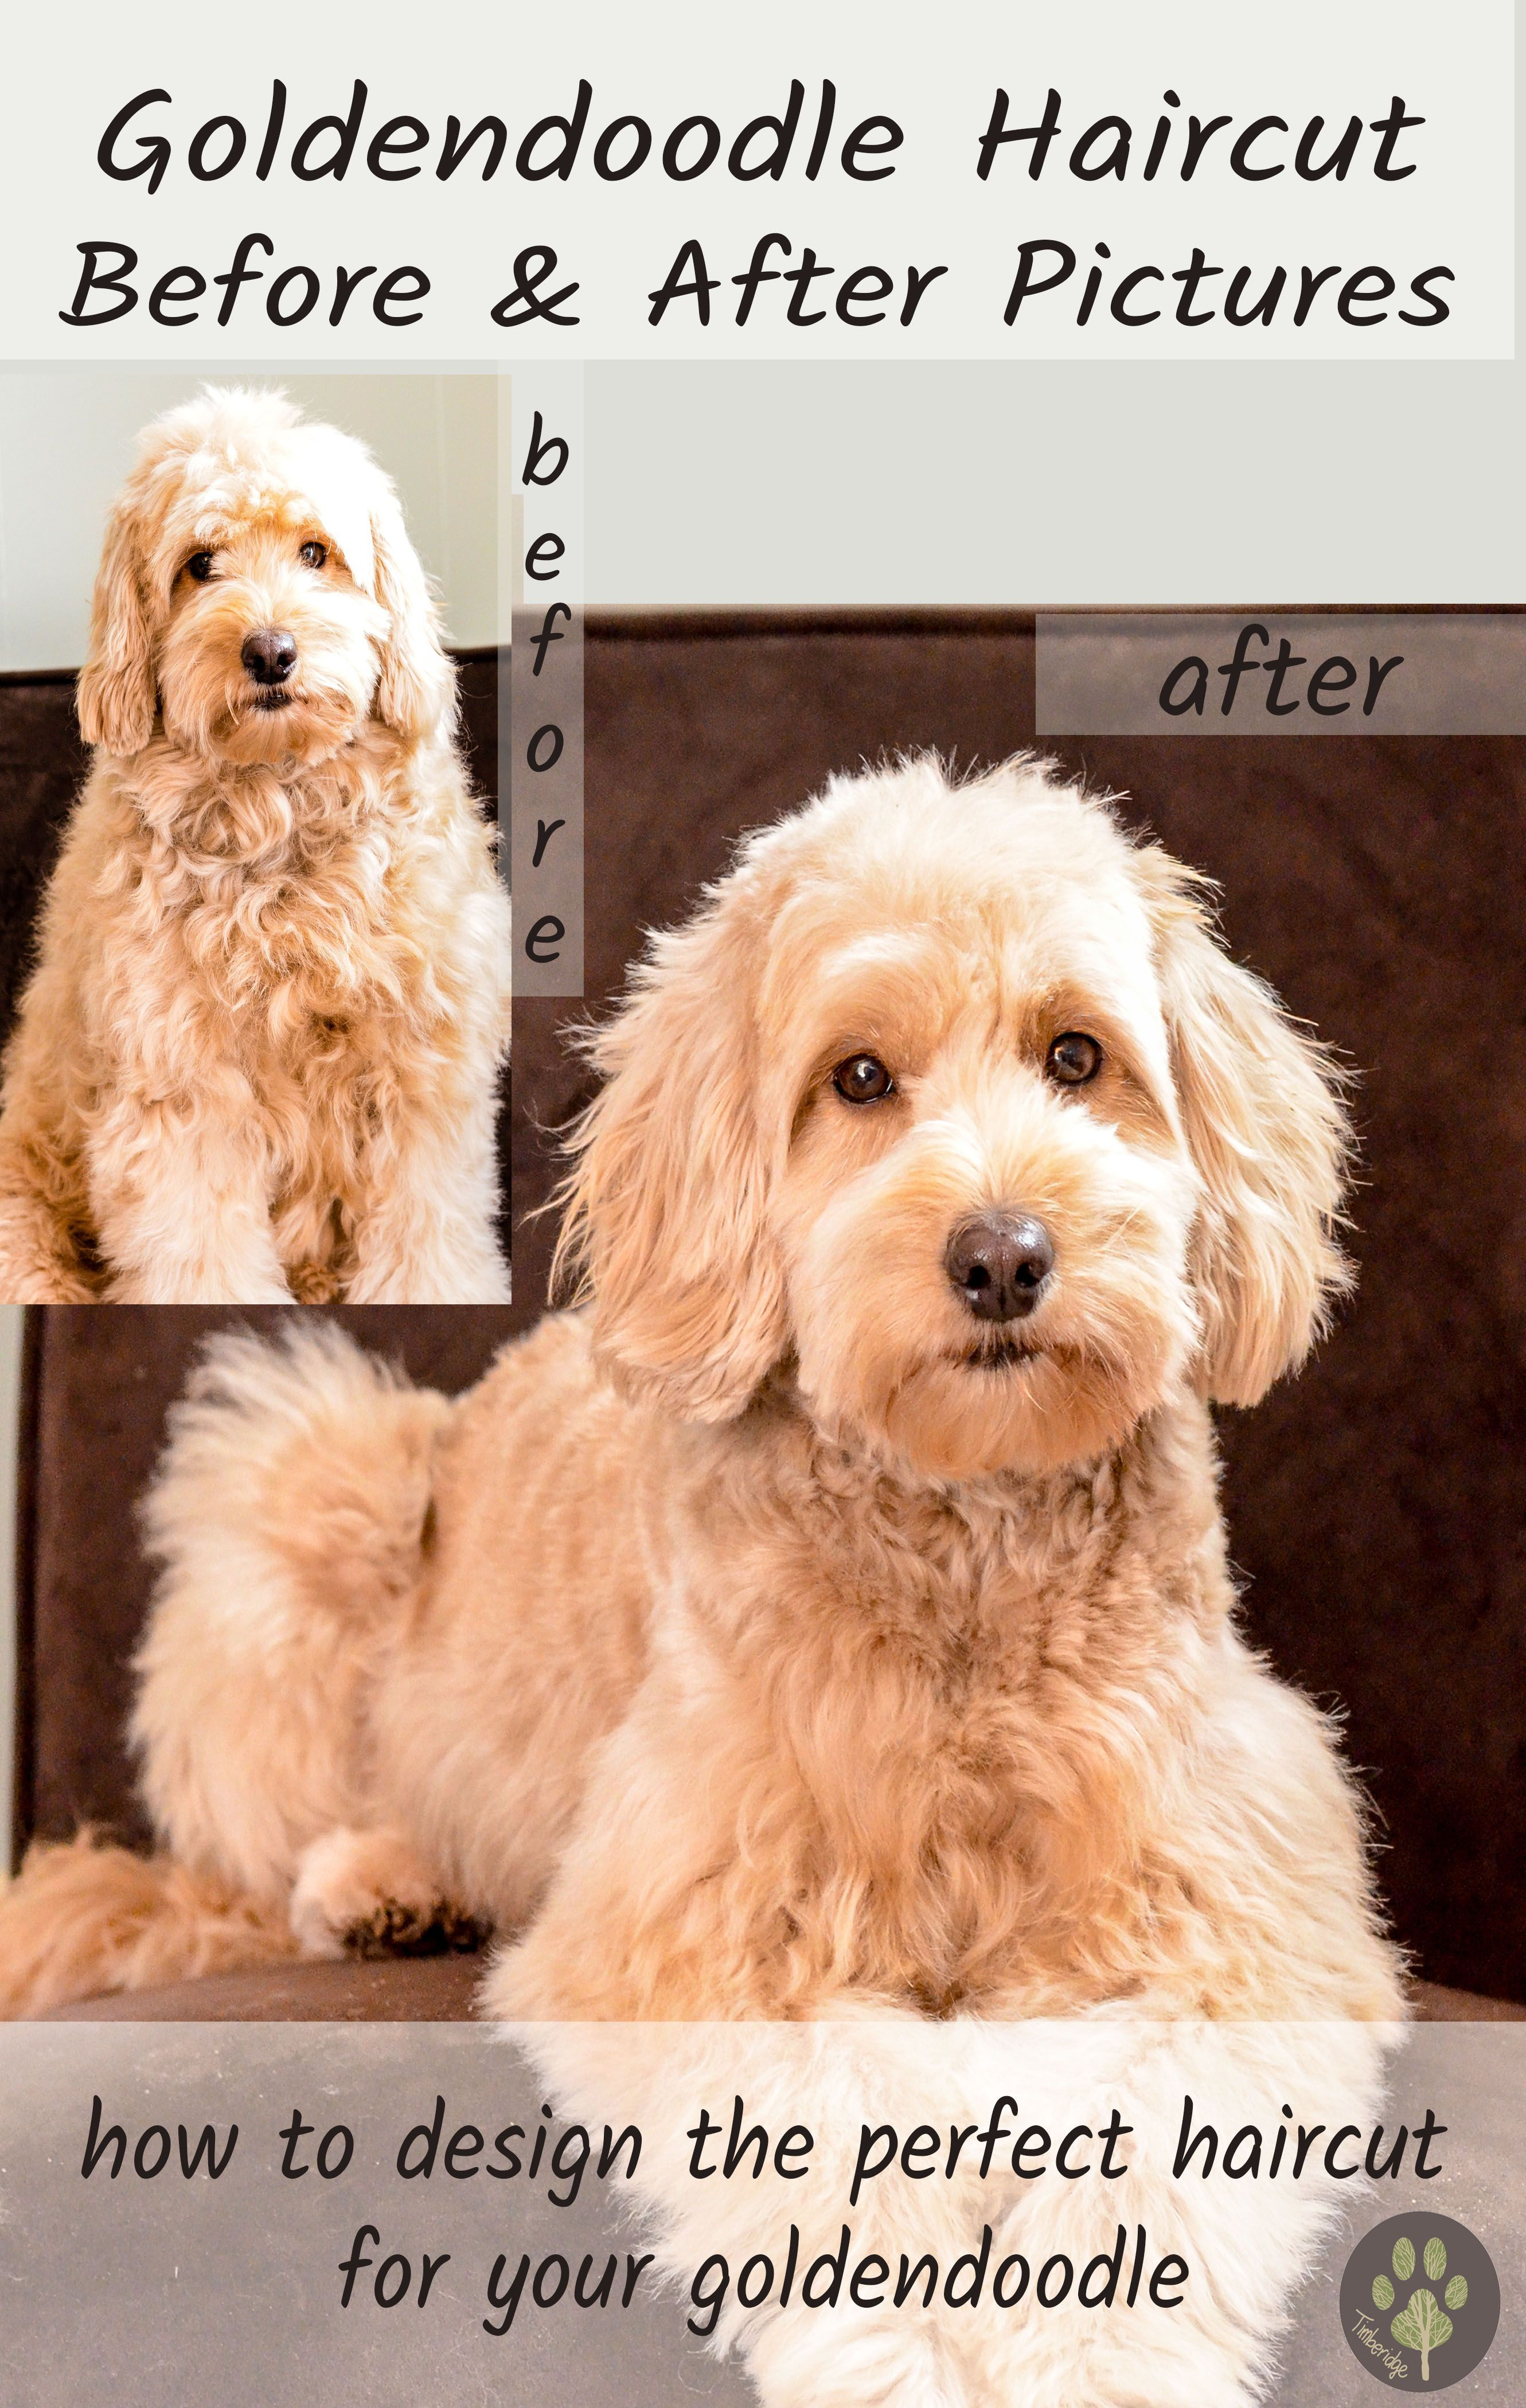 Goldendoodle Haircut Before And After Pictures Goldendoodlehaircut